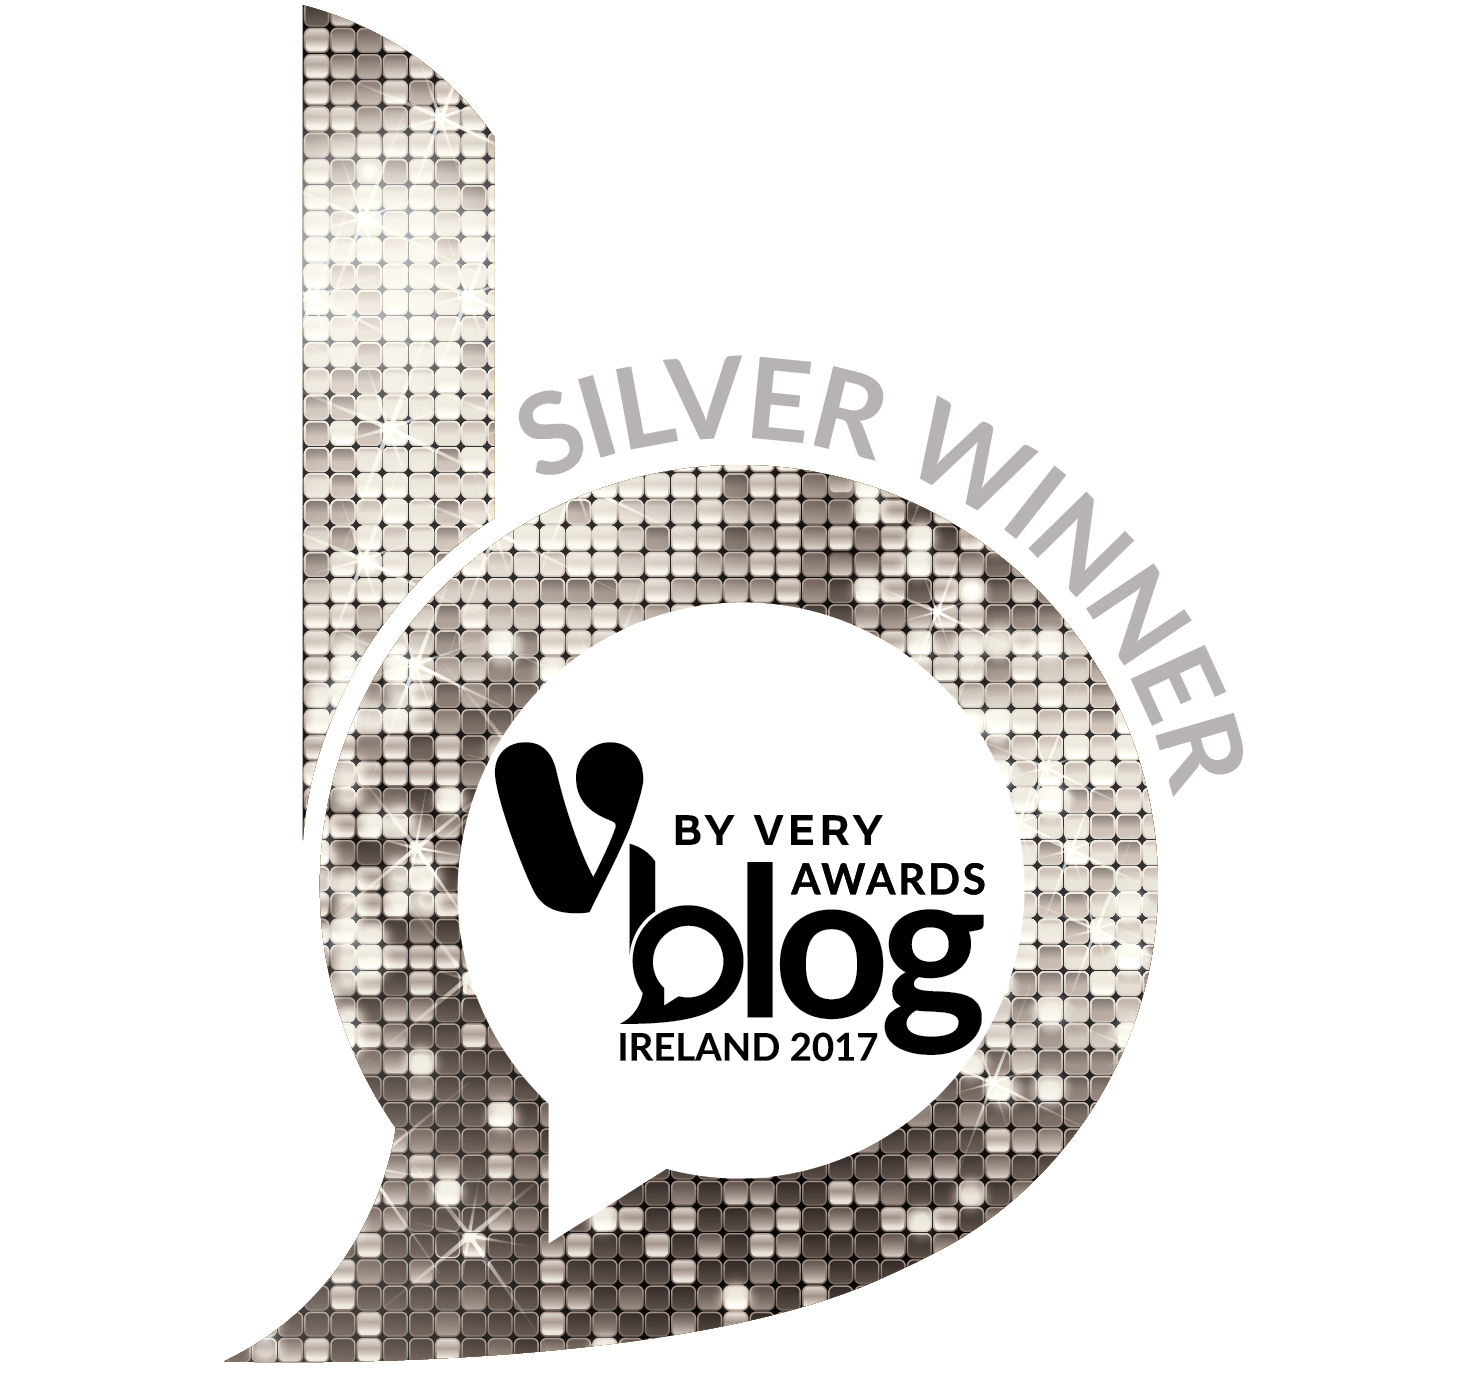 silver winner blog awards, award winning blogger